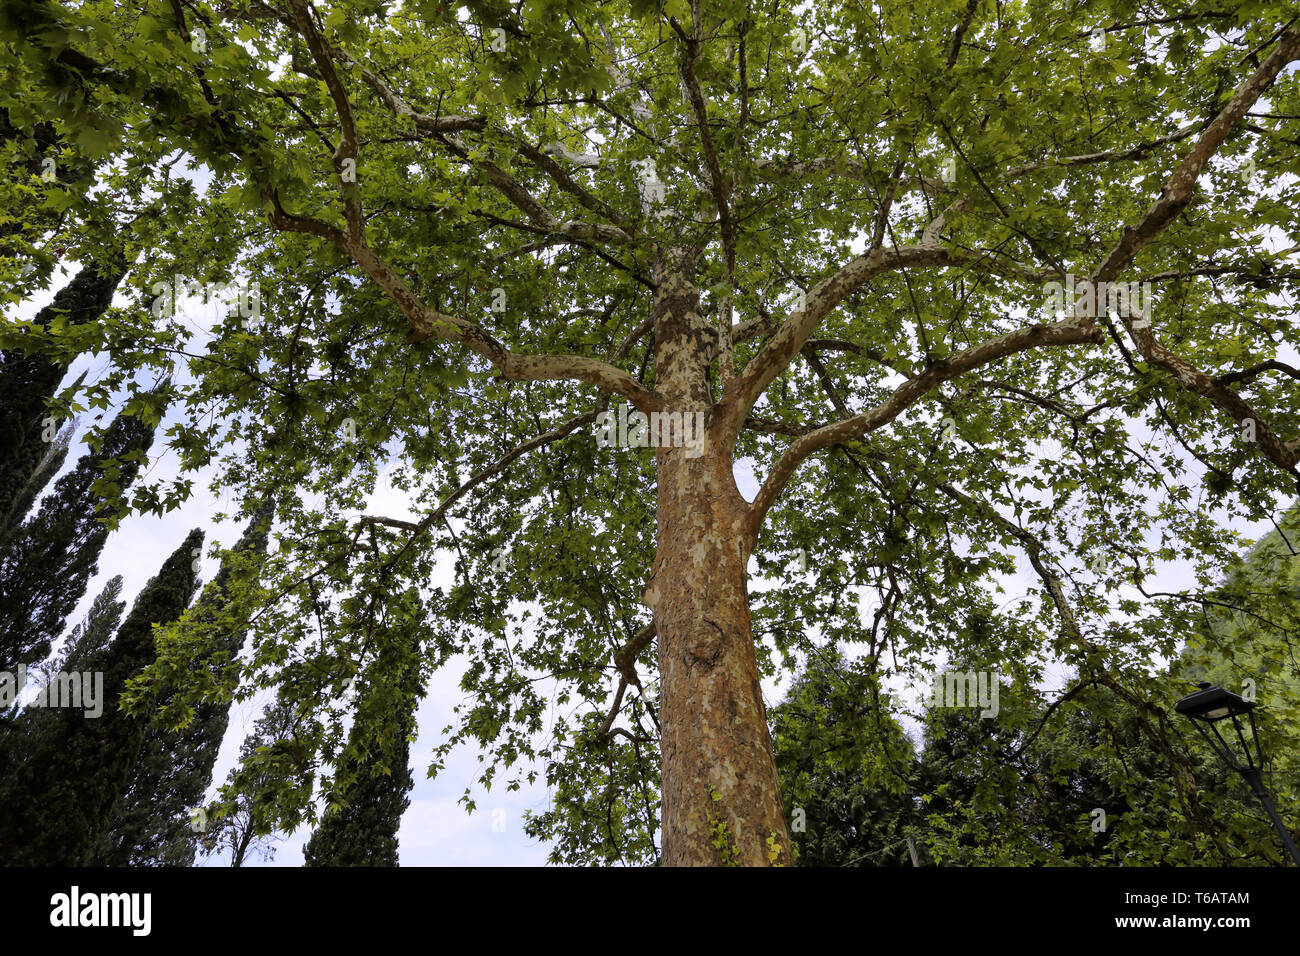 Extraordinary picturesque tree - Stock Image